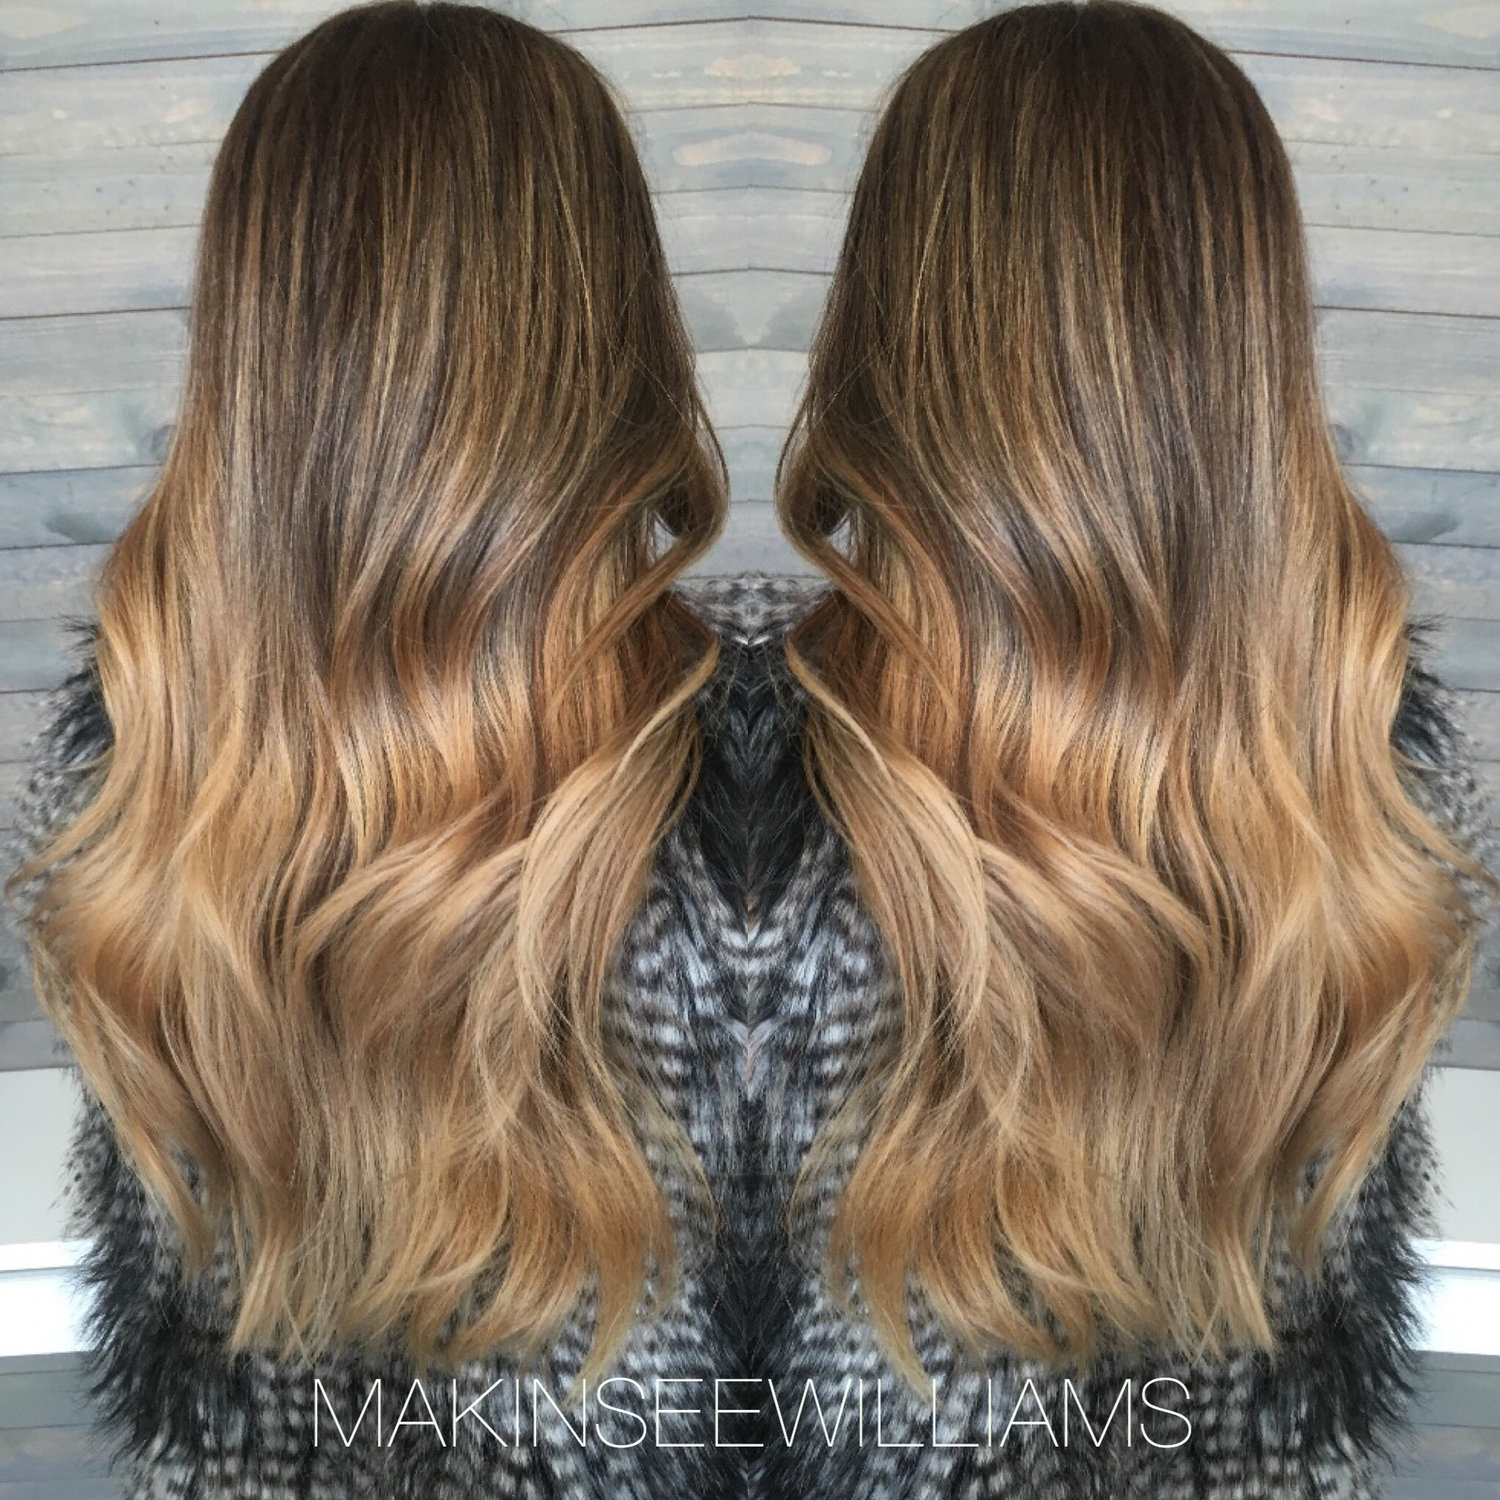 3 Highlighting Trends To Try This Fall Alter Ego Studio Salon